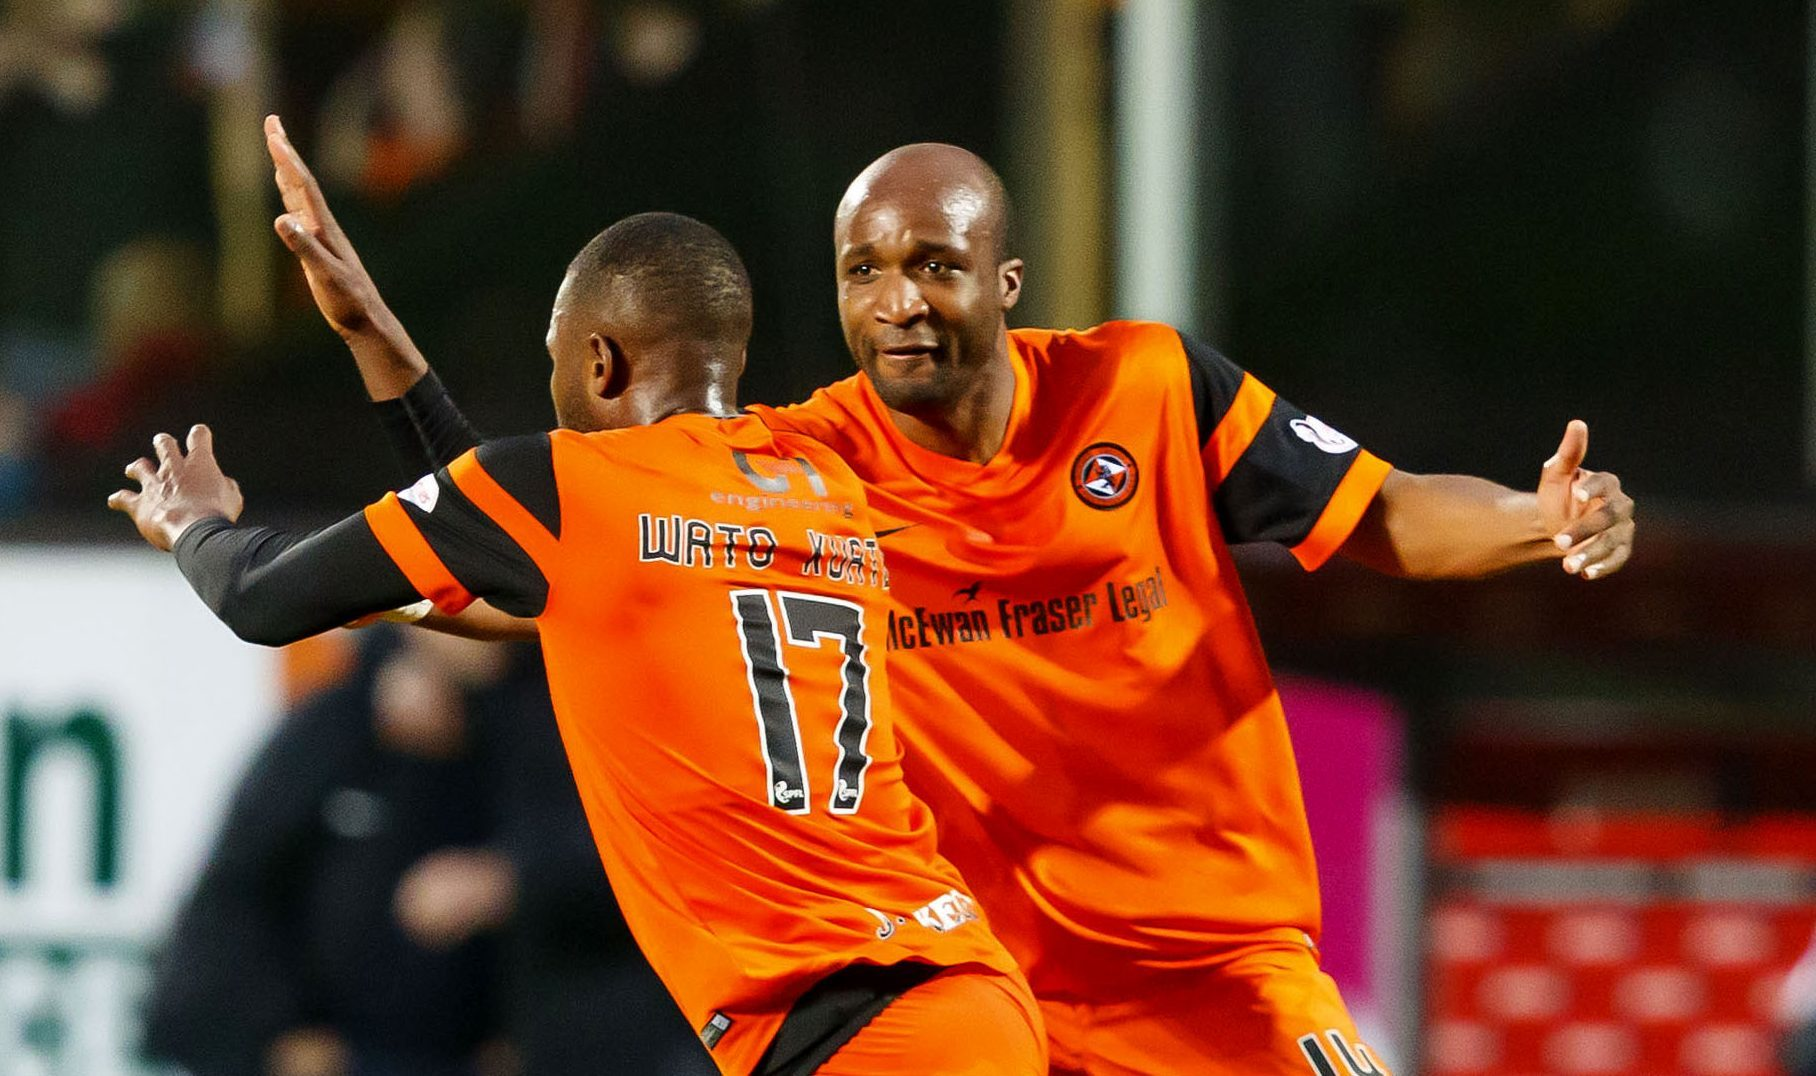 Wato Kuate celebrates his goal with William Edjenguele.